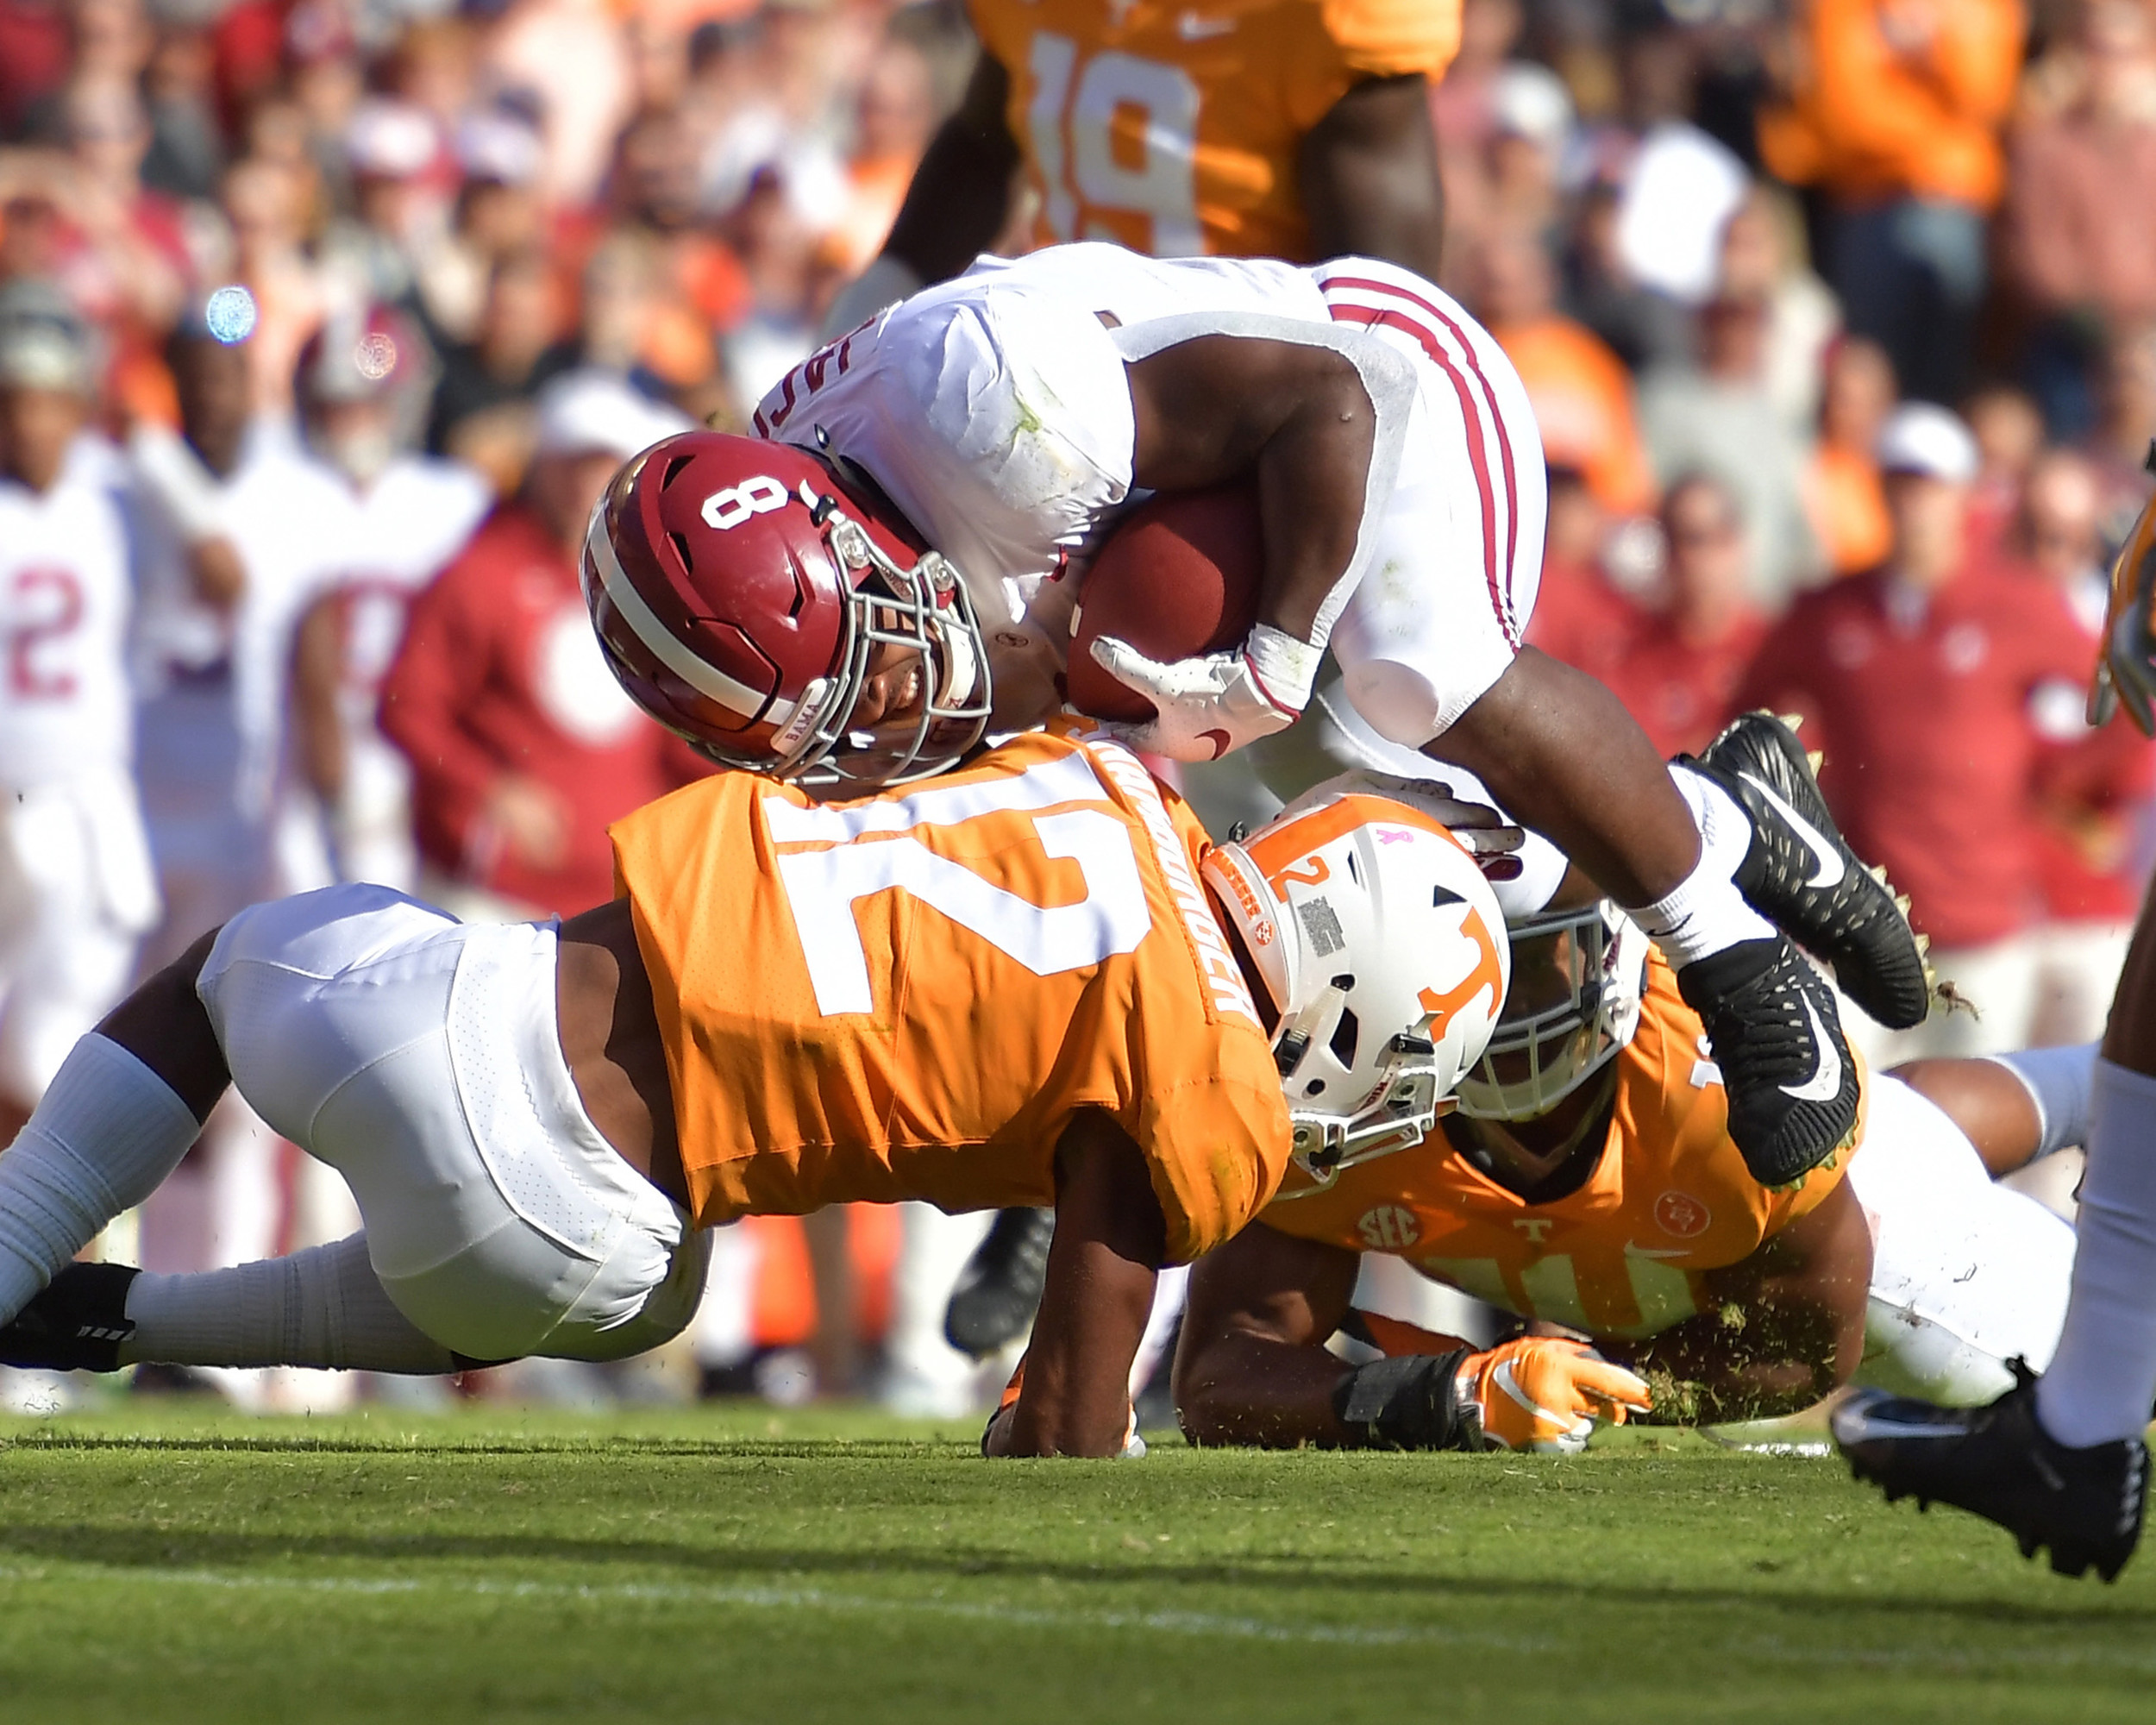 Alabama Crimson Tide running back Josh Jacobs (8) is tackled by Tennessee Volunteers defensive back Shawn Shamburger (12) in the first quarter of the NCAA football game on Saturday, Oct. 20, 2018, at Neyland Stadium in Knoxville. Tenn. Alabama wins 58-21. (Photo by Lee Walls)